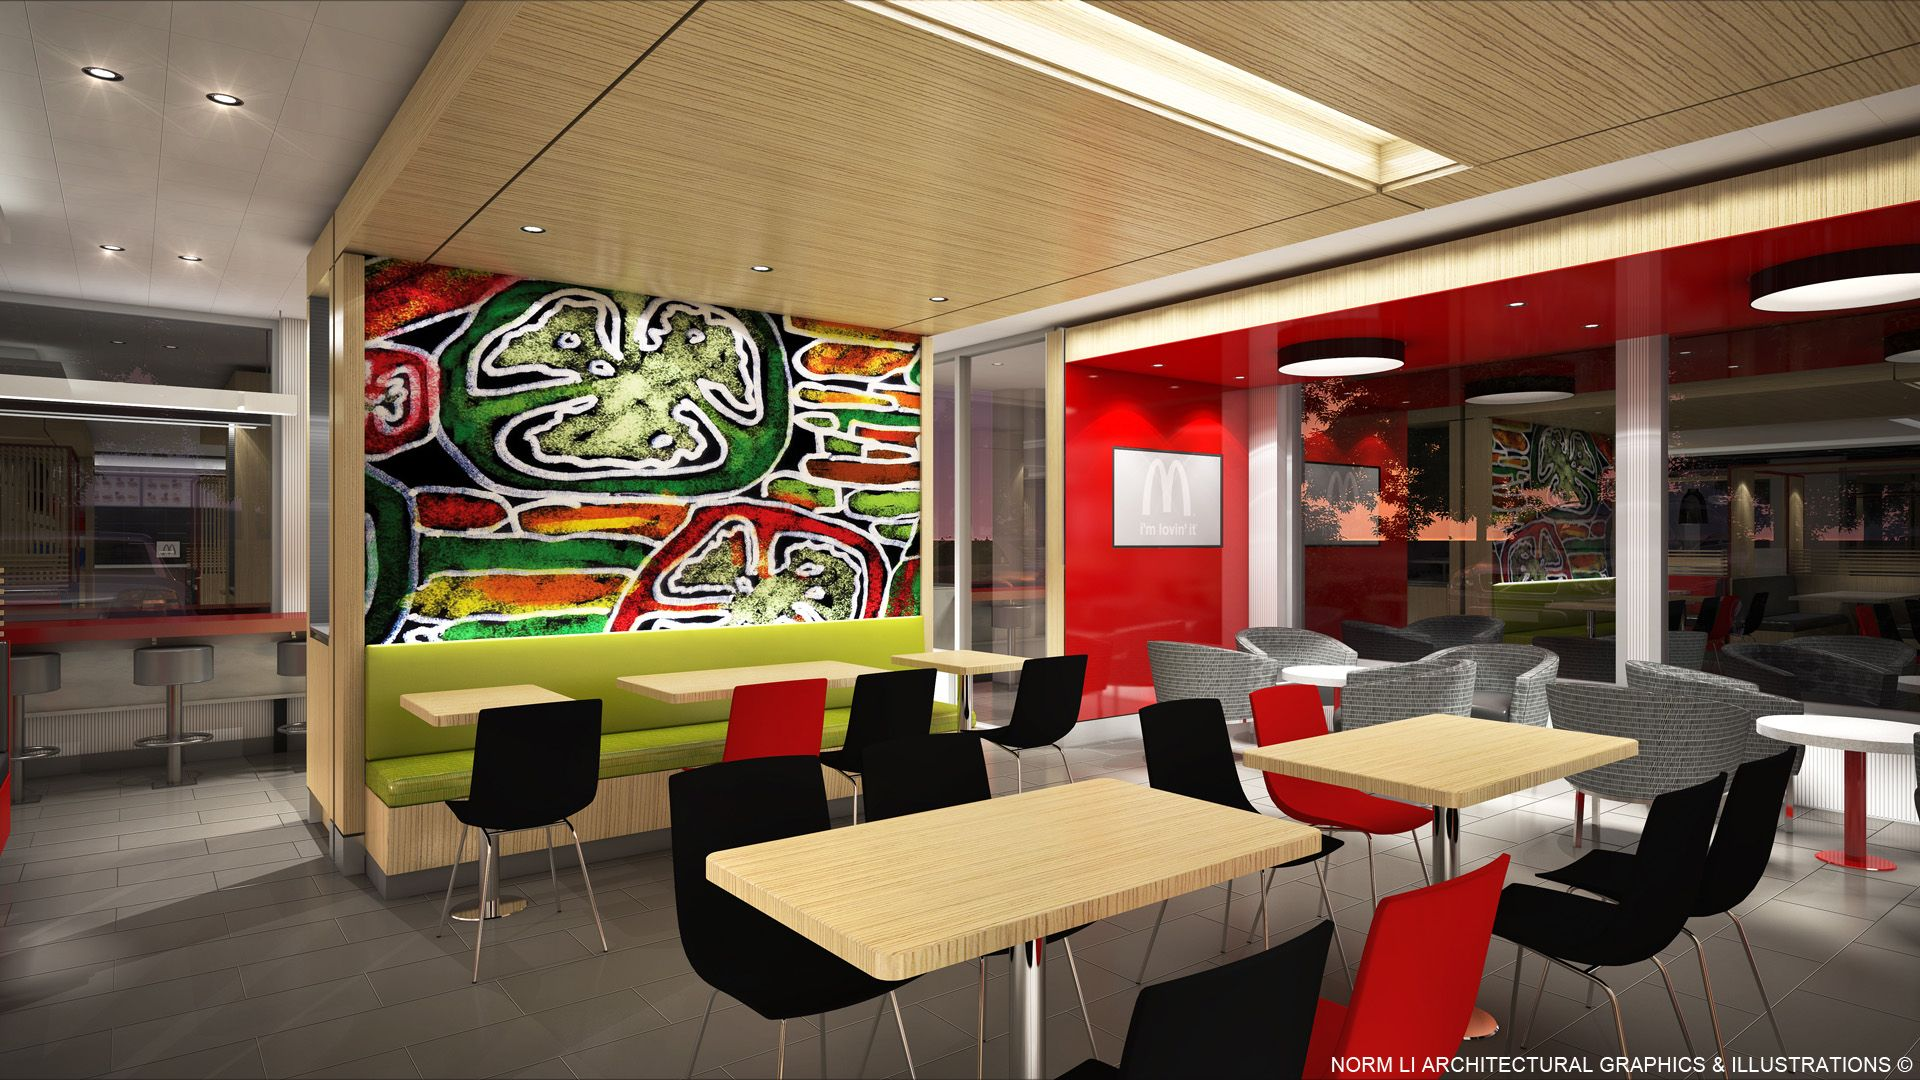 S Design Interieur Mcdonalds Interior Google Search Hospitality Design